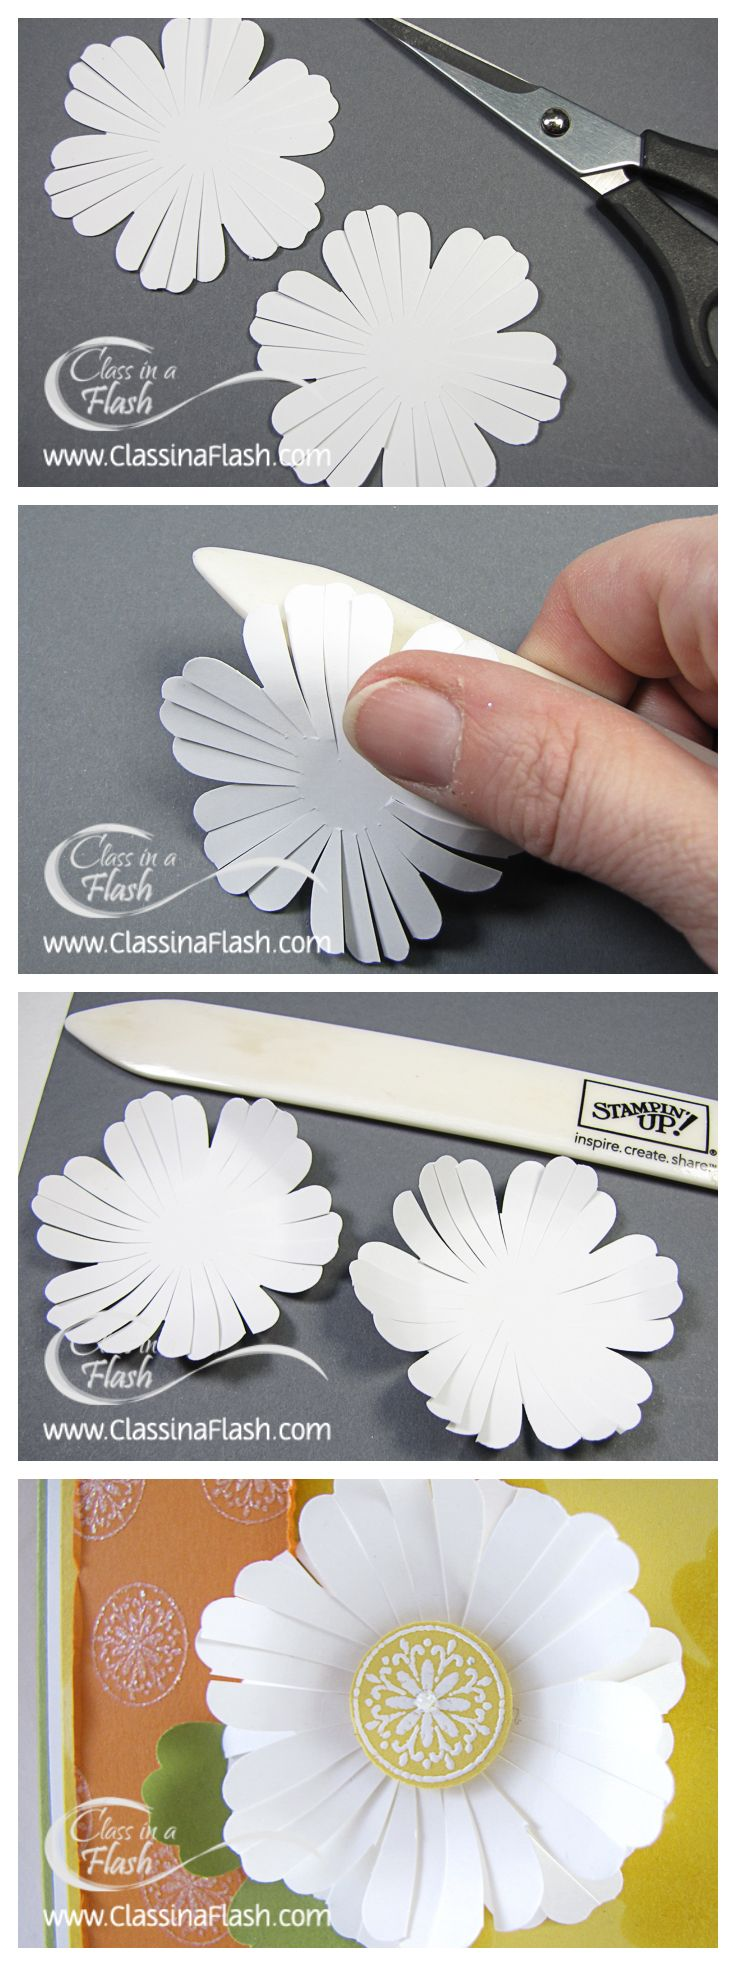 Mixed Bunch Daisy Tutorial | CraftyPerson Production Store